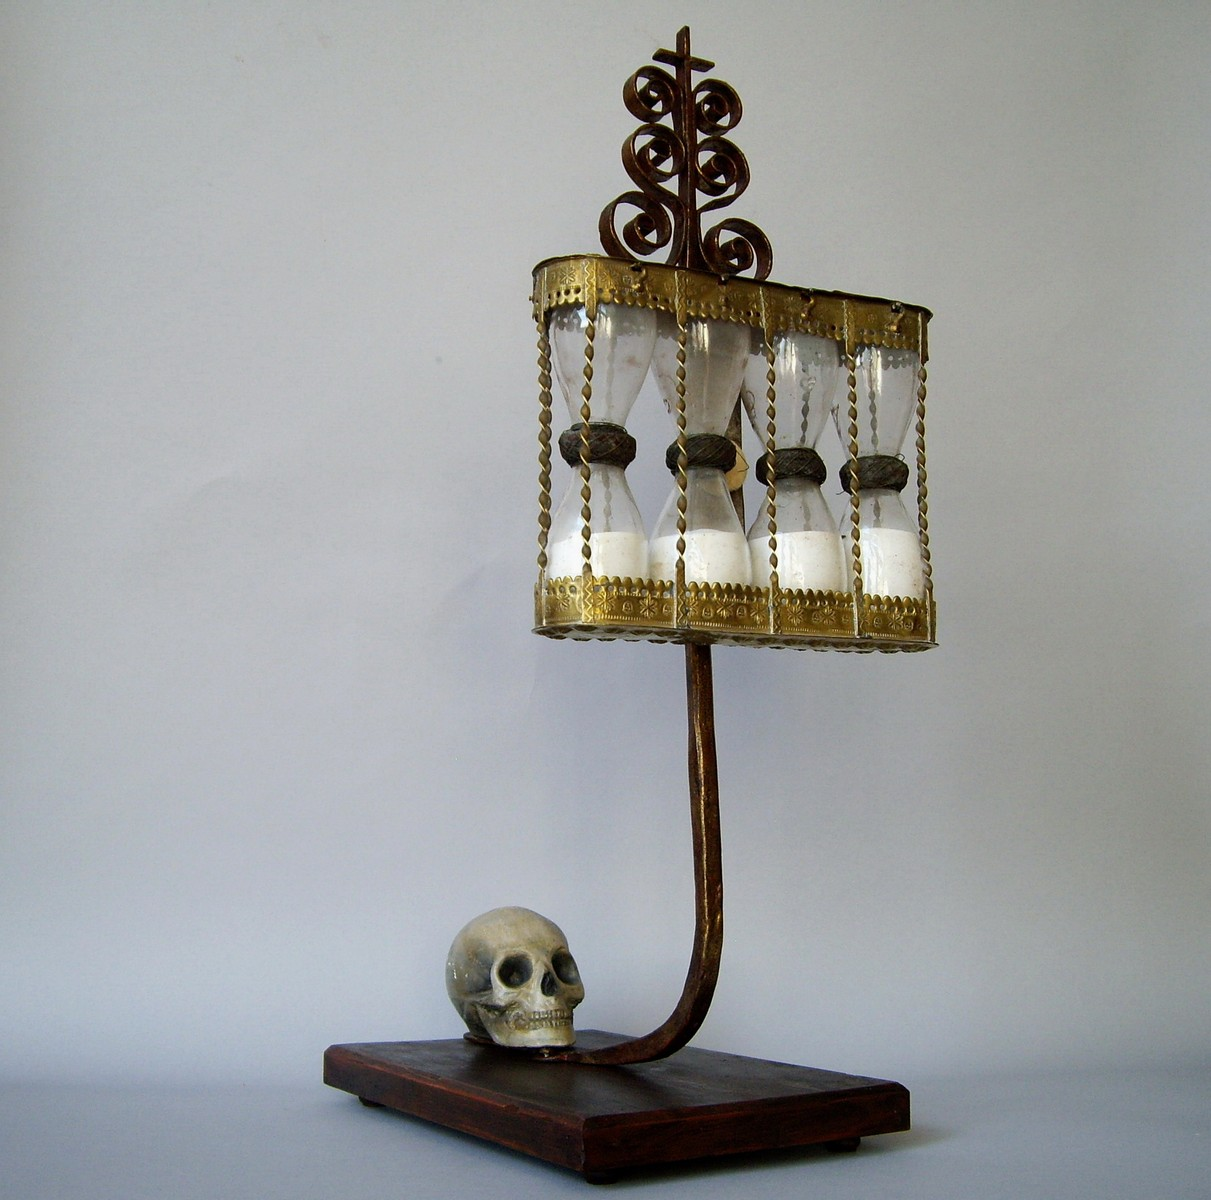 17TH CENTURY FOUR - BULP HOURGLASSES